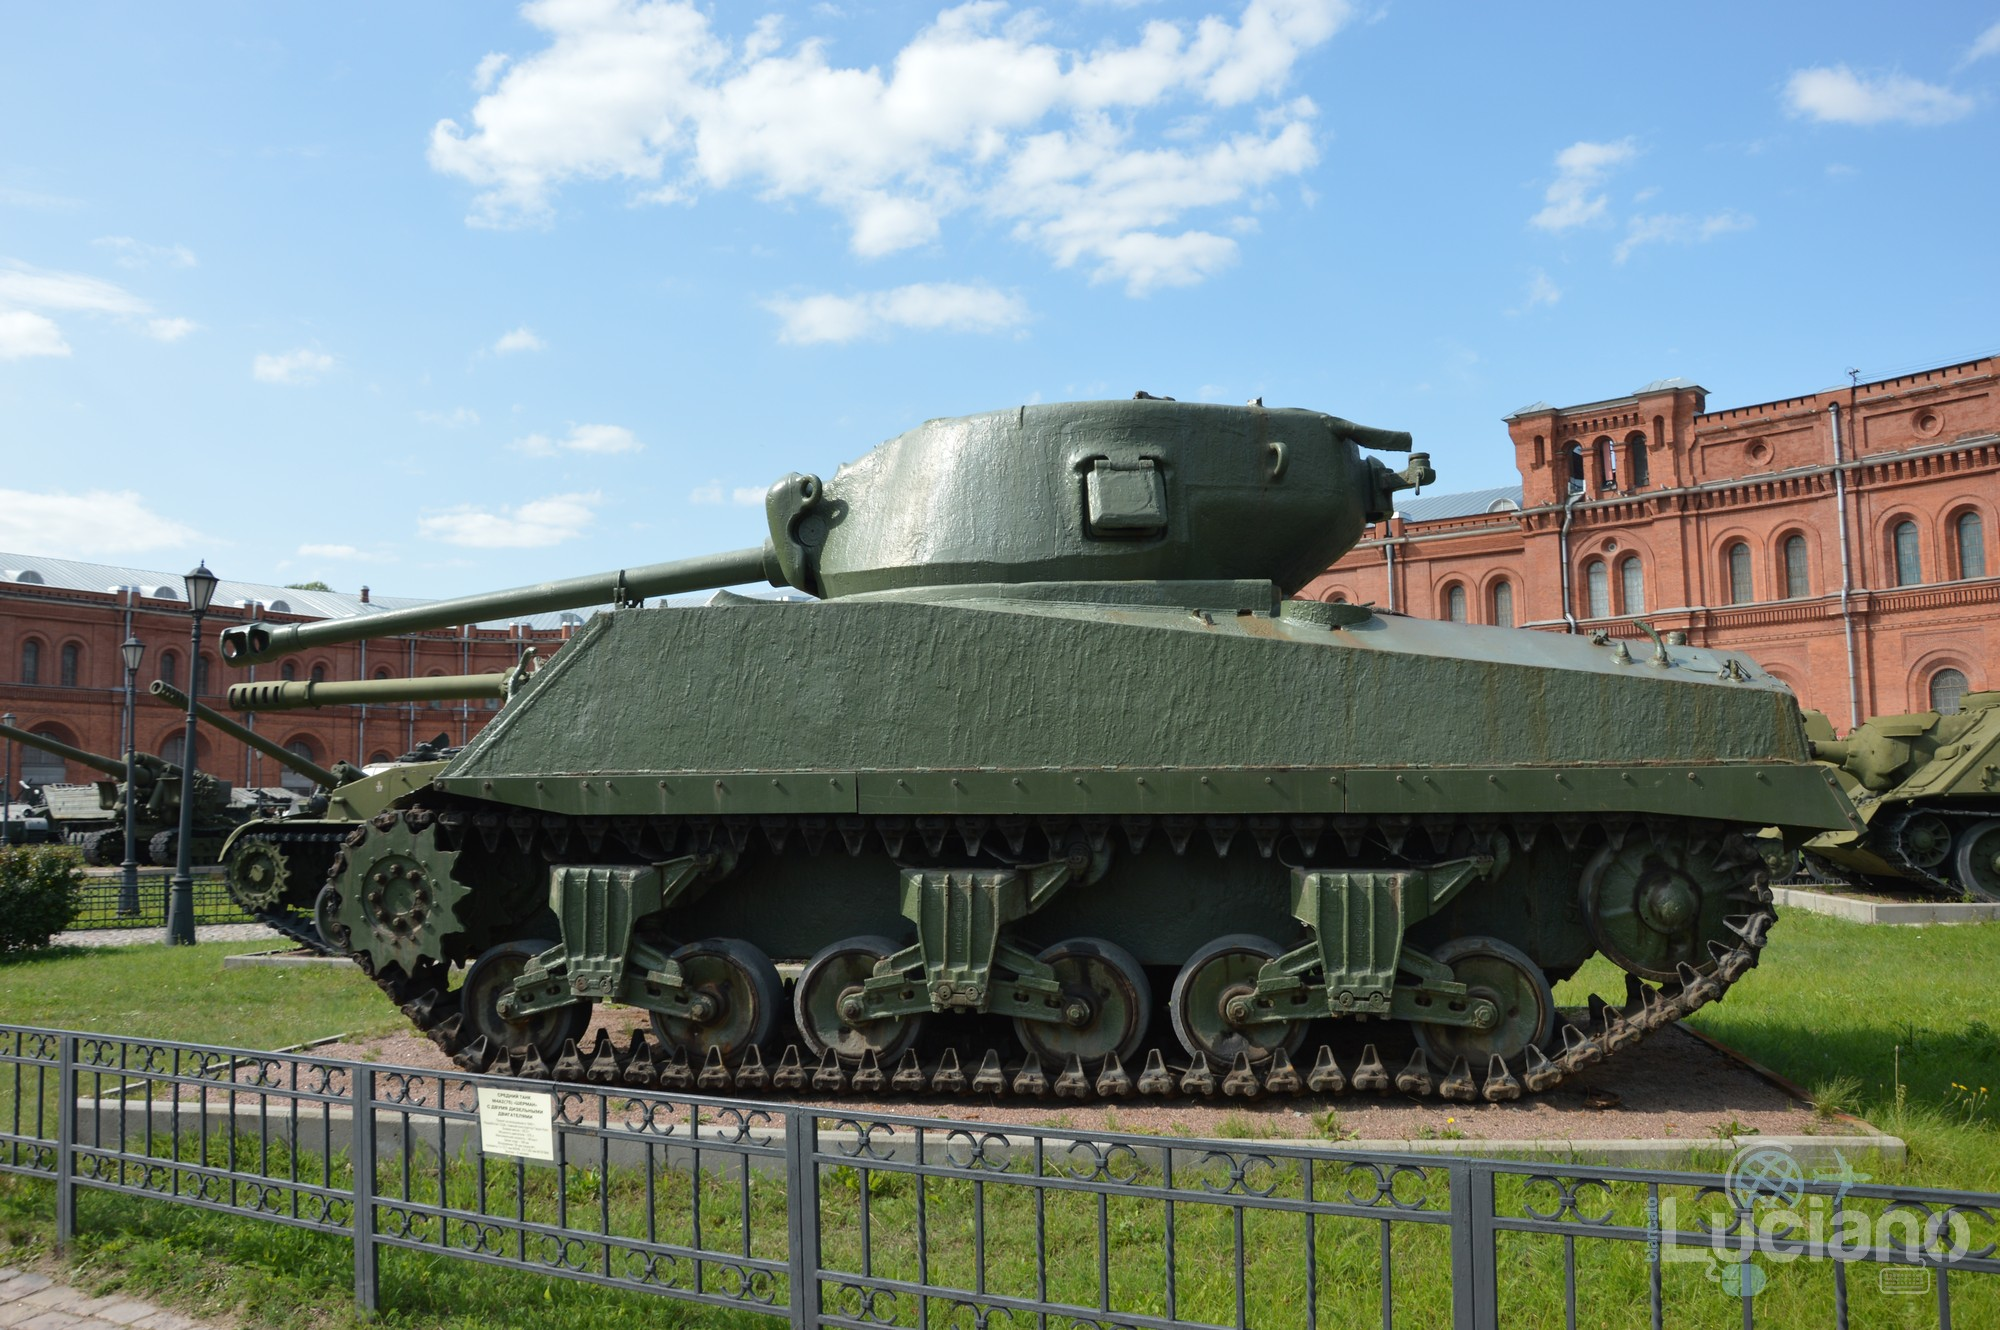 Military-Historical-Museum-of-Artillery-Engineer-and-Signal-Corps-St-Petersburg-Russia-Luciano-Blancato- (60)